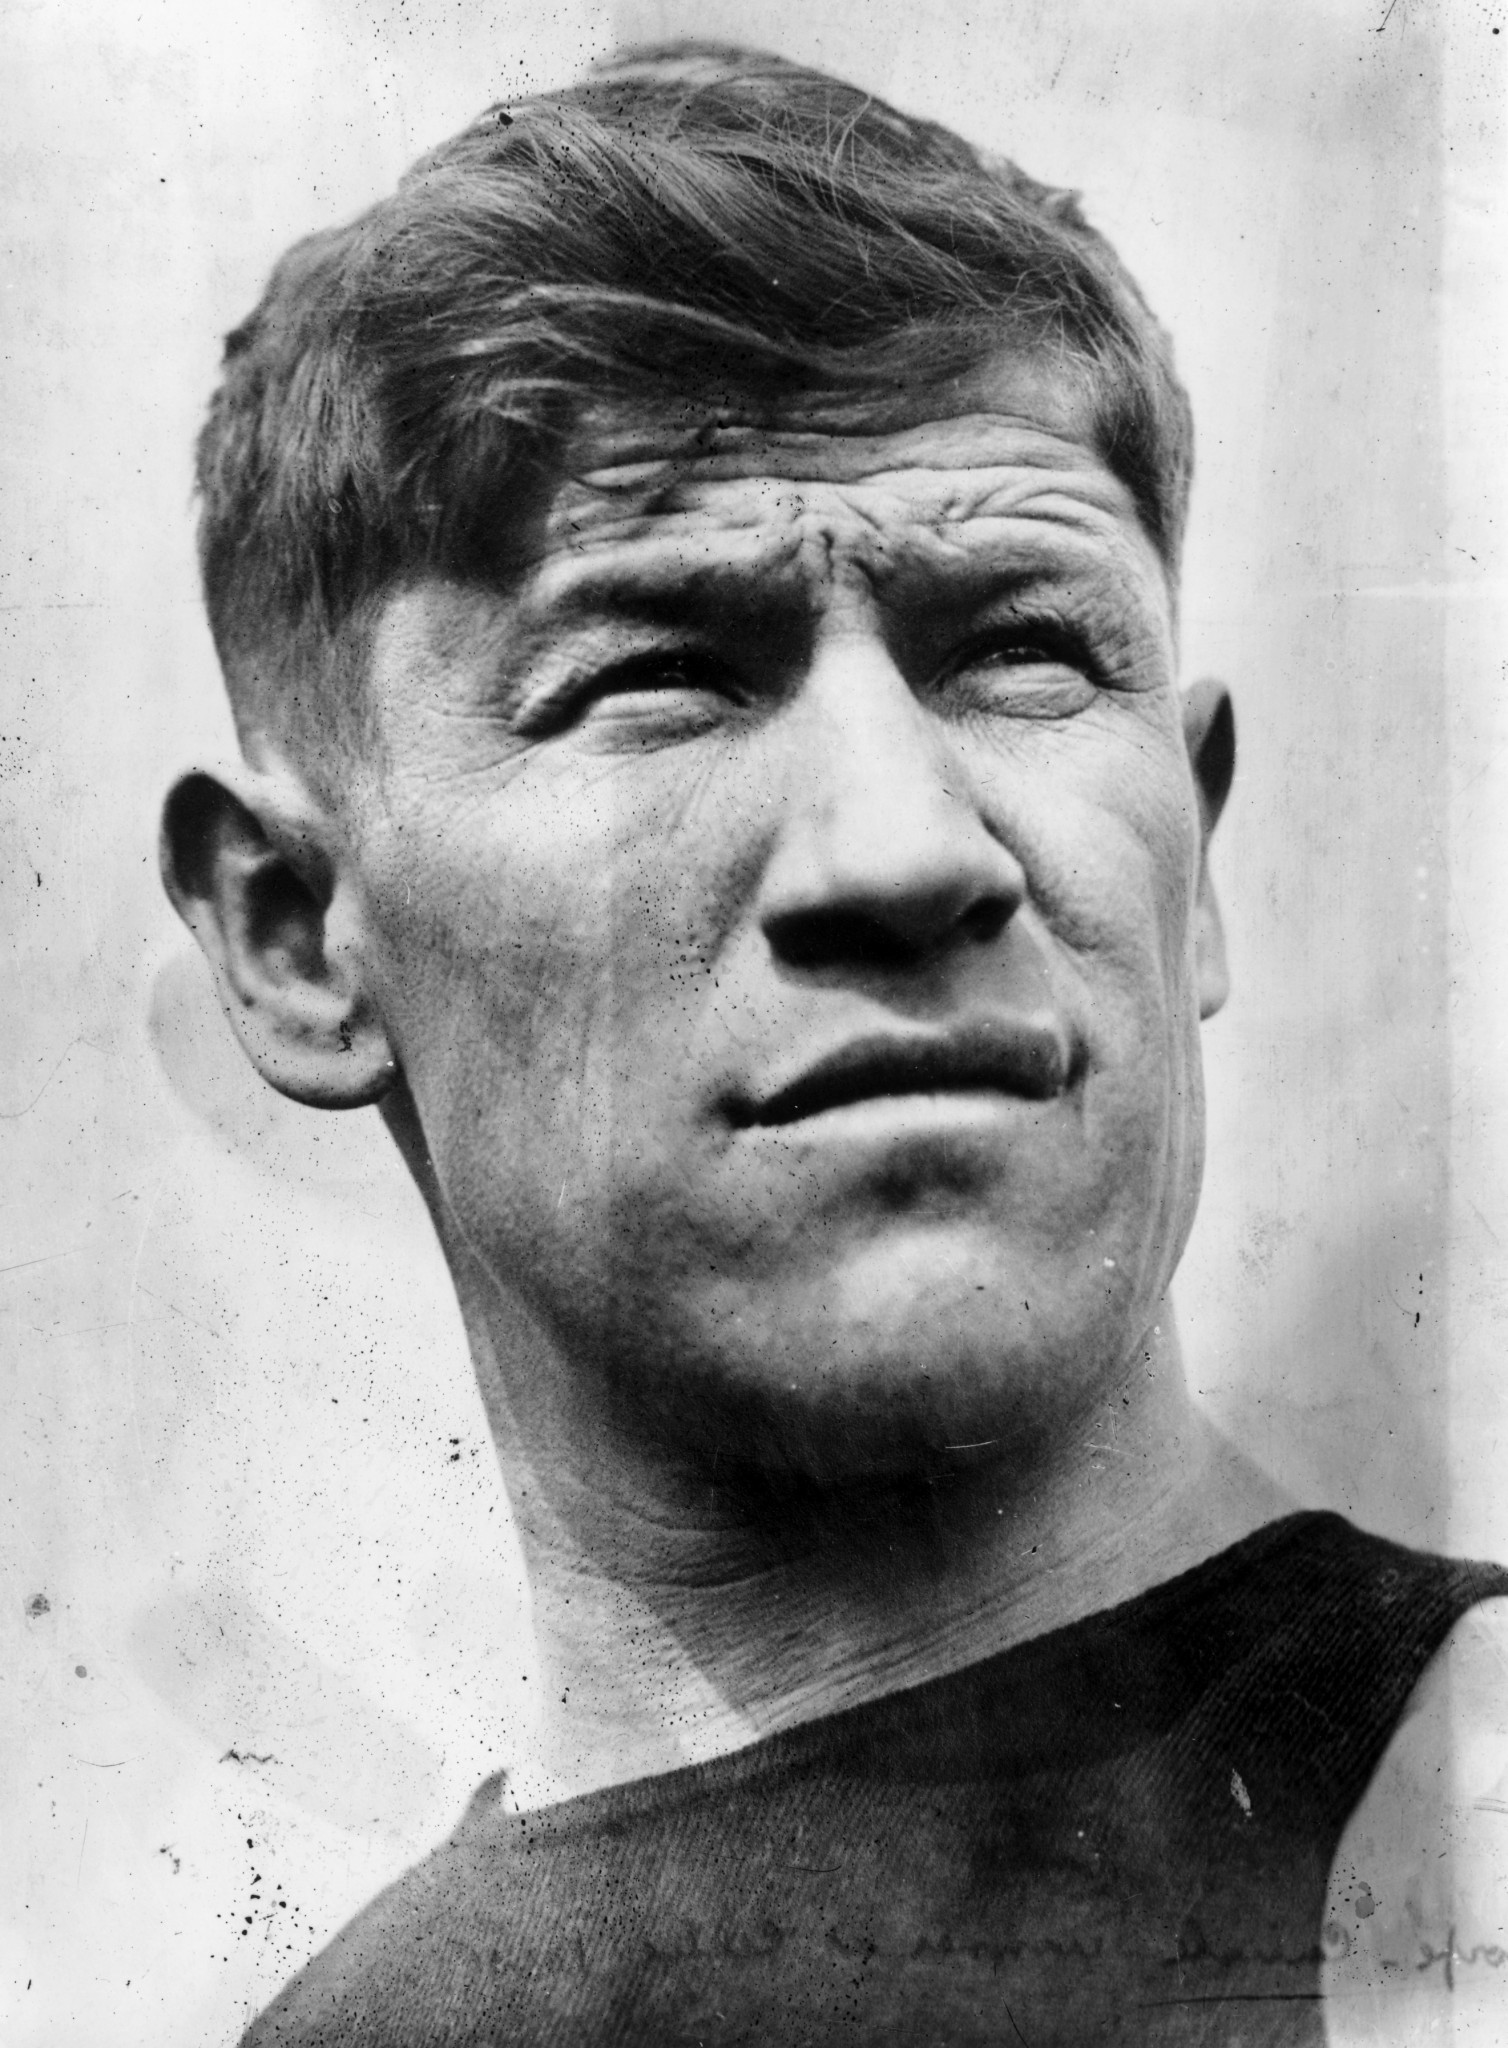 Author of Jim Thorpe-inspired novel backs campaign to recognise him as sole champion from Stockholm 1912